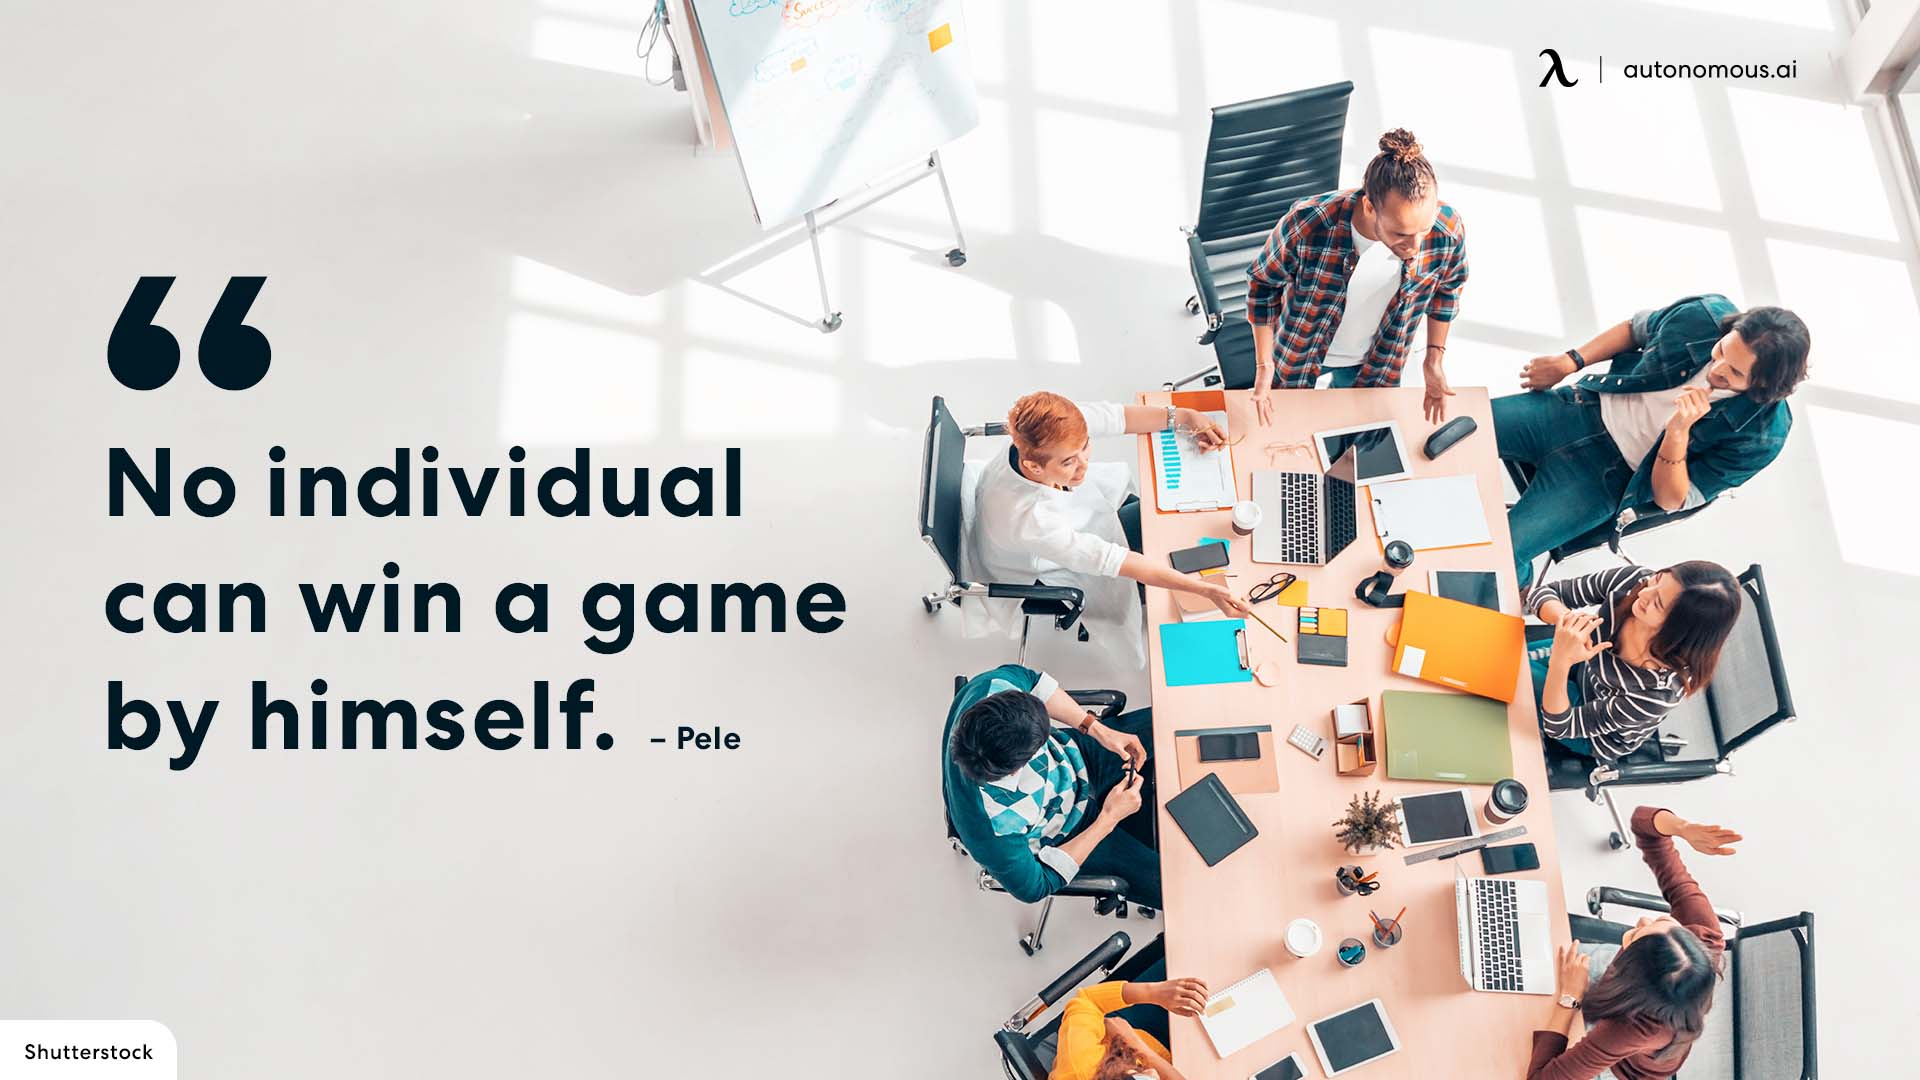 Best Teamwork Quotes to Get Productivity in the Workplace